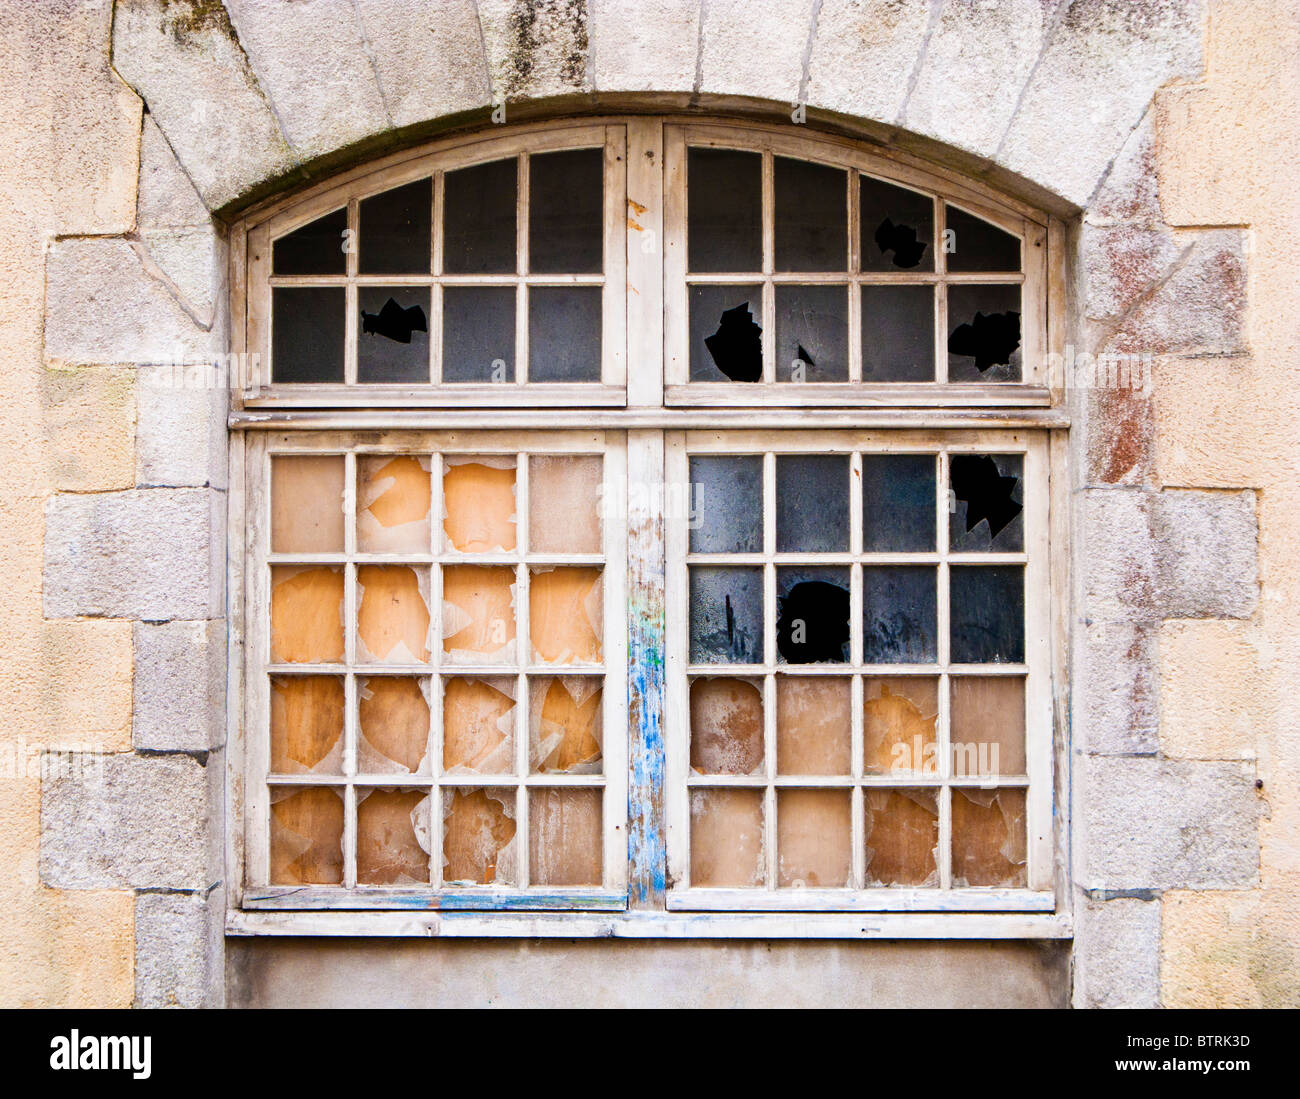 Arched window with broken panes of glass - Stock Image